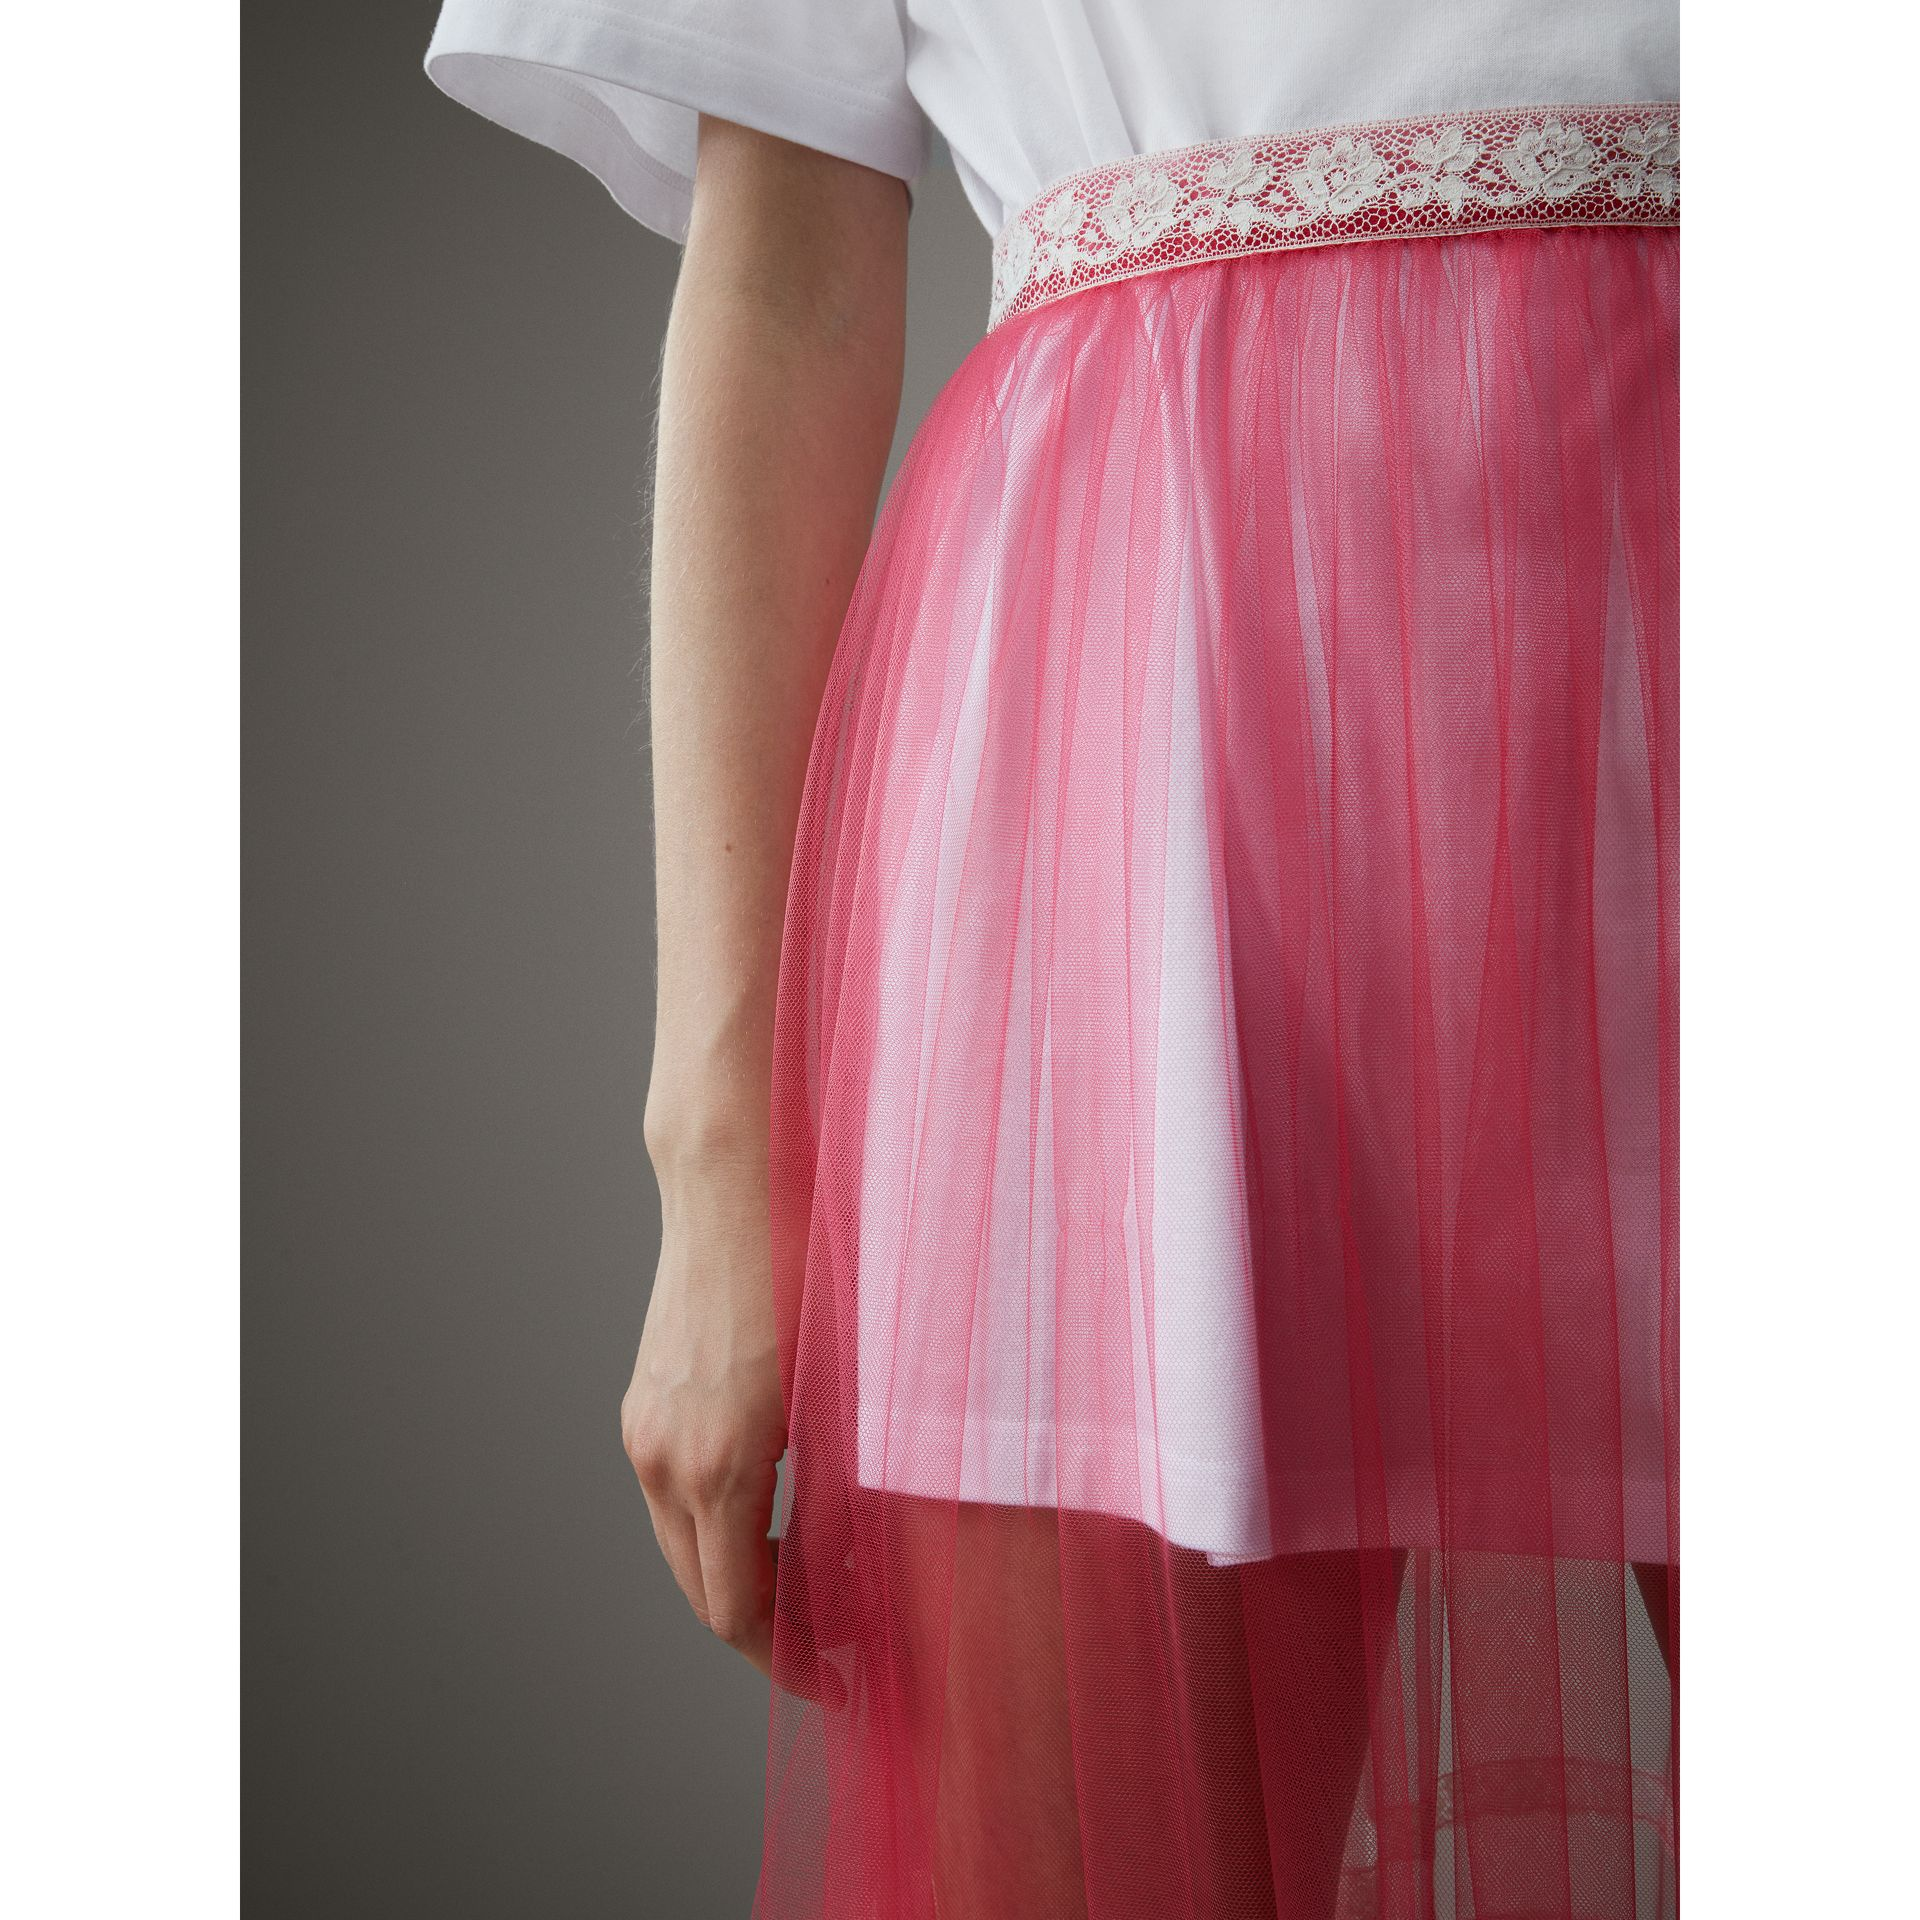 Floor-length English Lace Trim Tulle Skirt in Bright Pink - Women | Burberry United Kingdom - gallery image 1